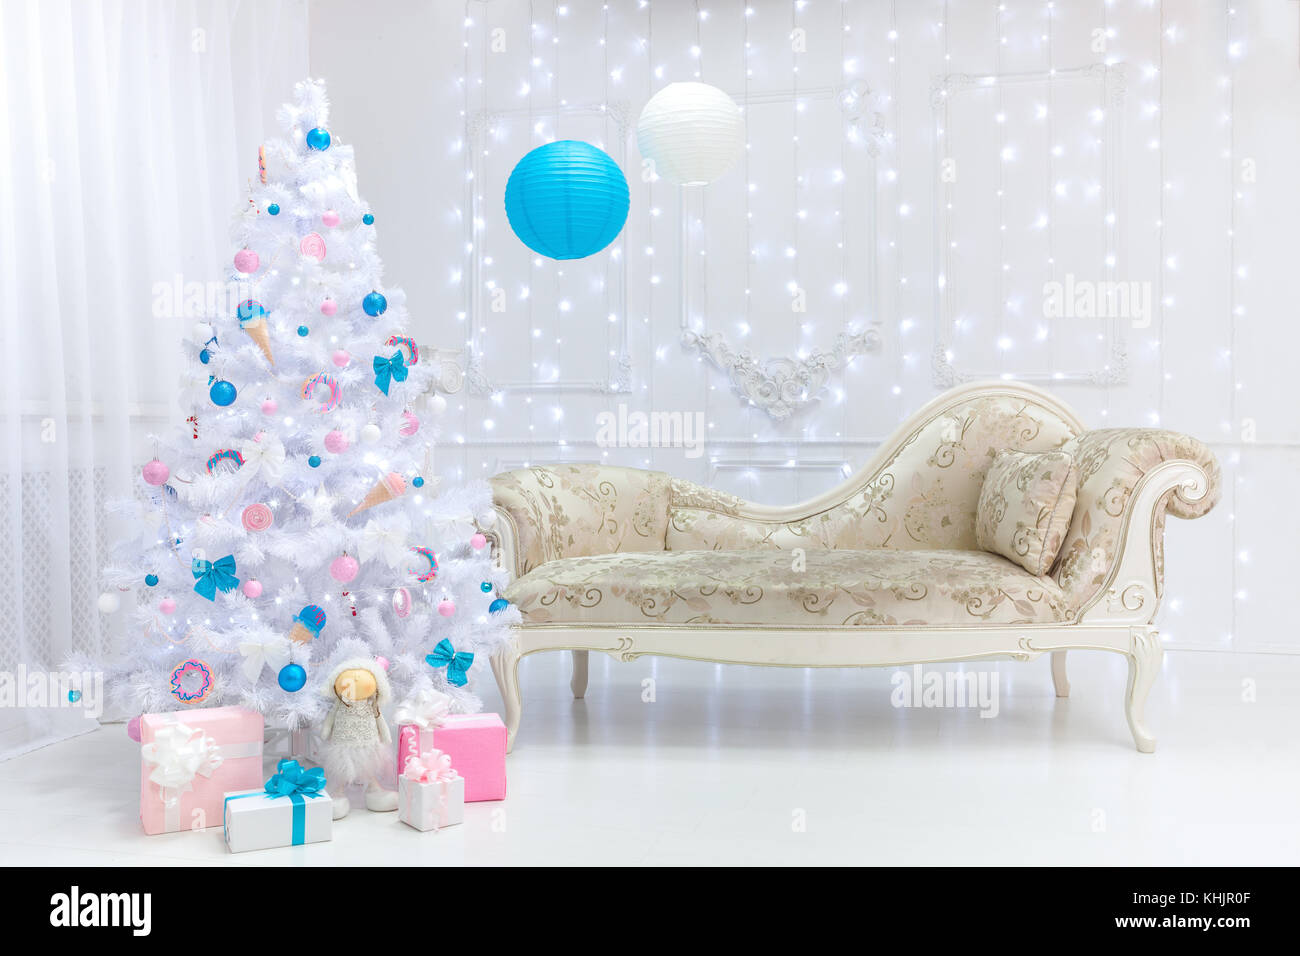 Classic Christmas light interior in white, pink and blue tones with ...